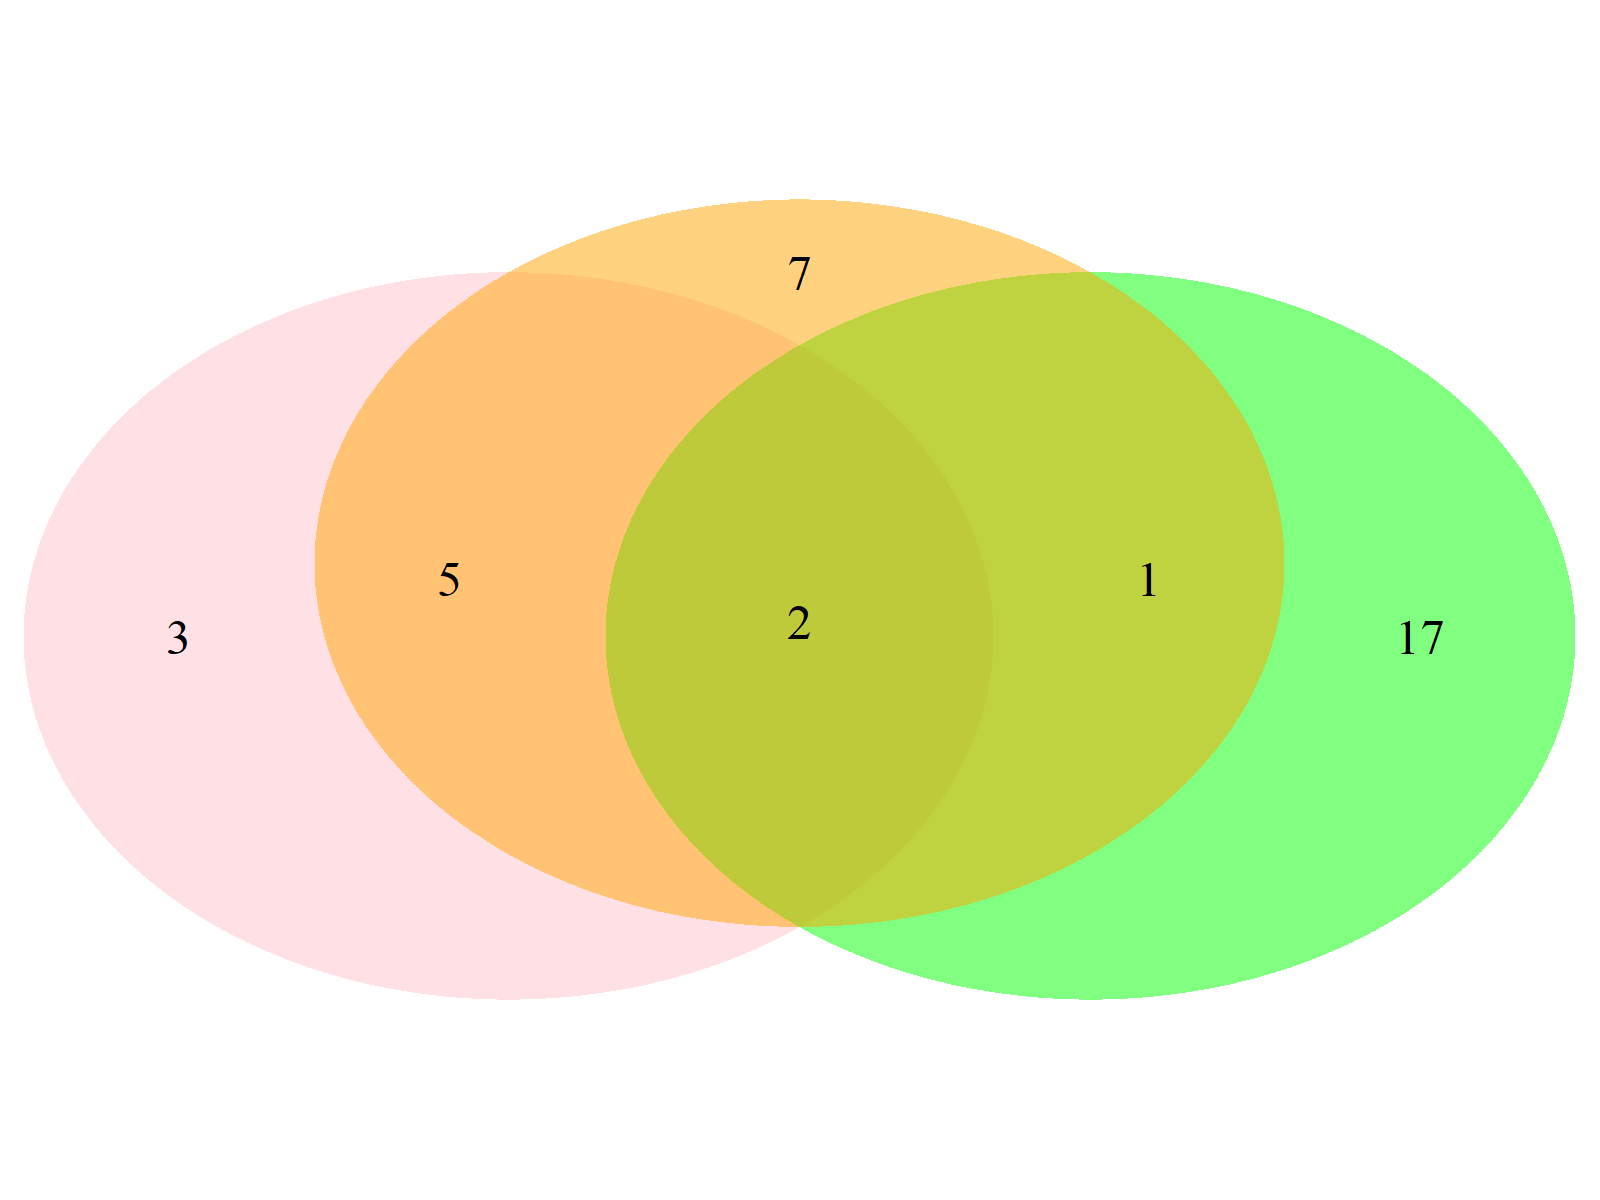 Venn Diagram Example 7